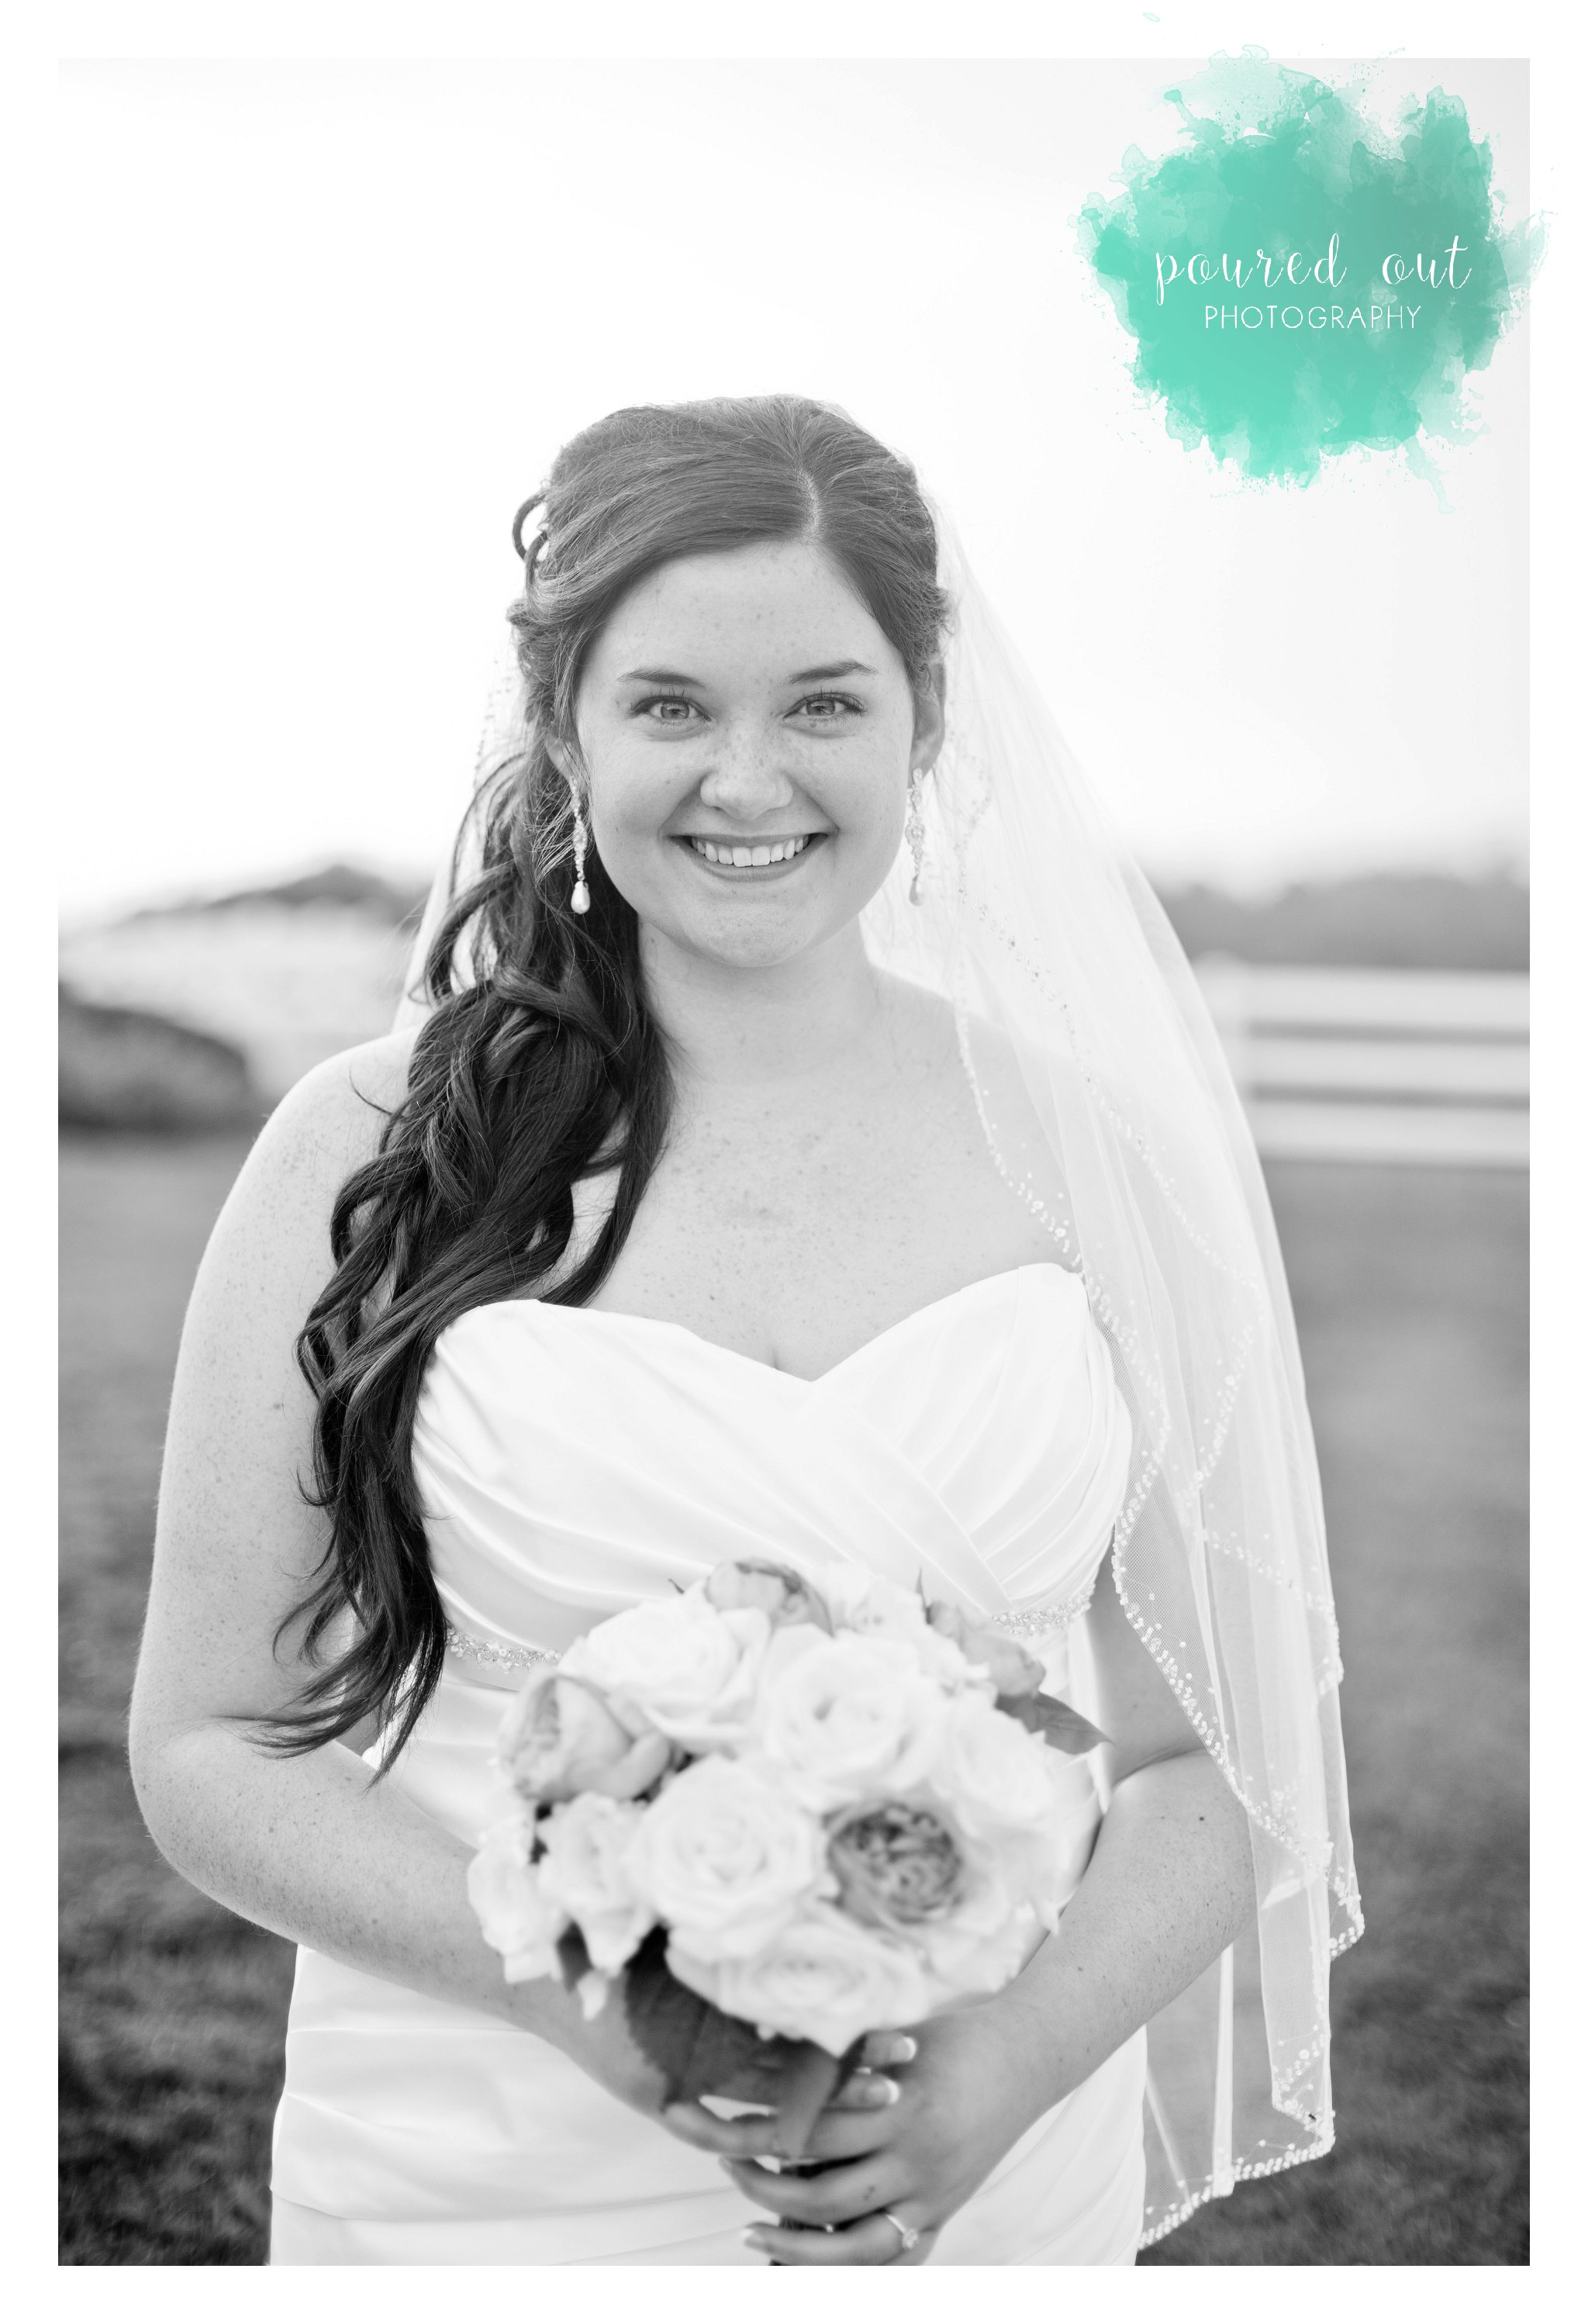 april_bridal_poured_out_photography-187_WEB.jpg